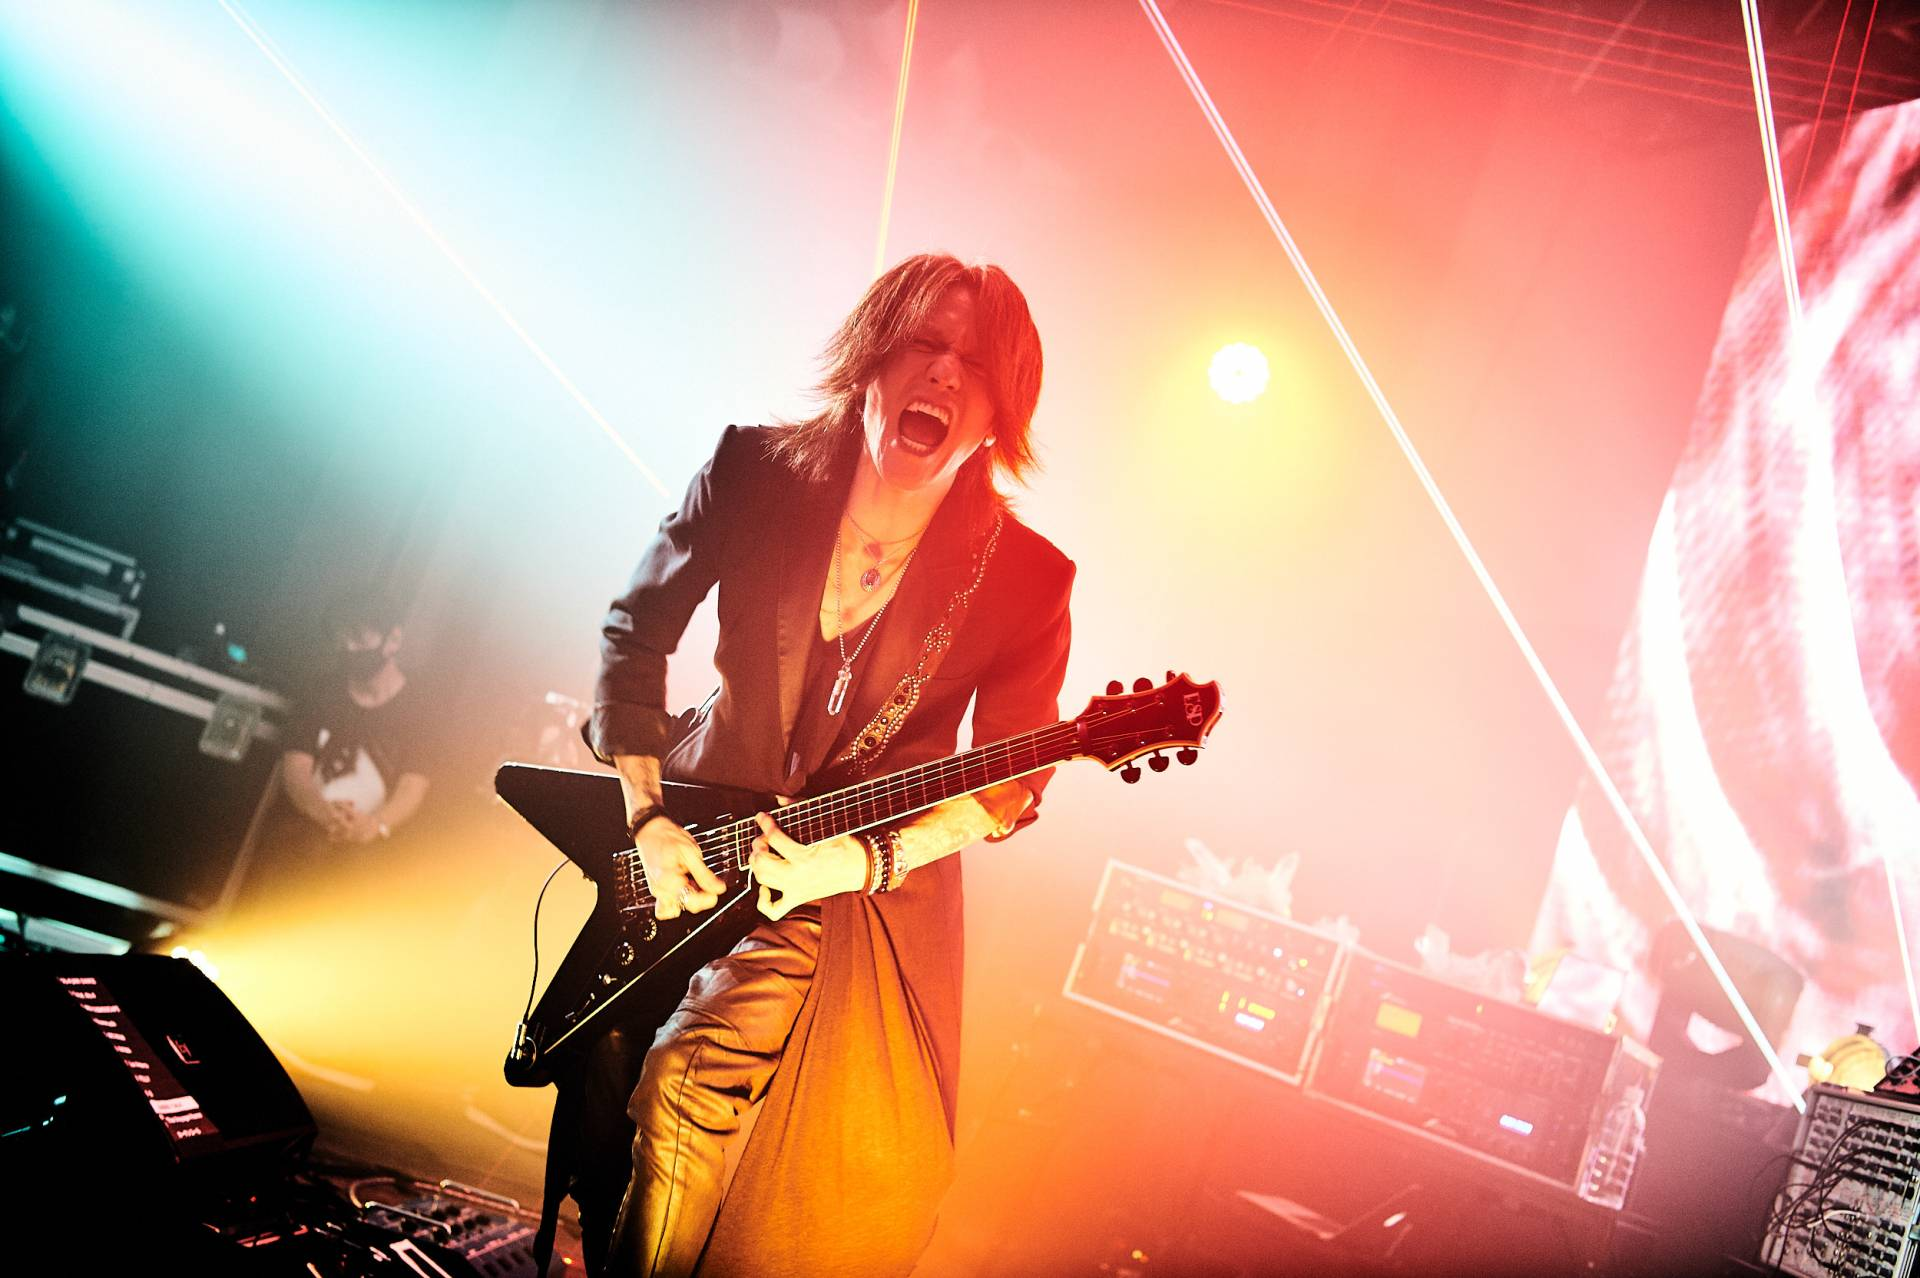 SUGIZO LIVE STREAMING FROM TOKYO EPISODE I ~RE-ECHO TO COSMIC DANCE~